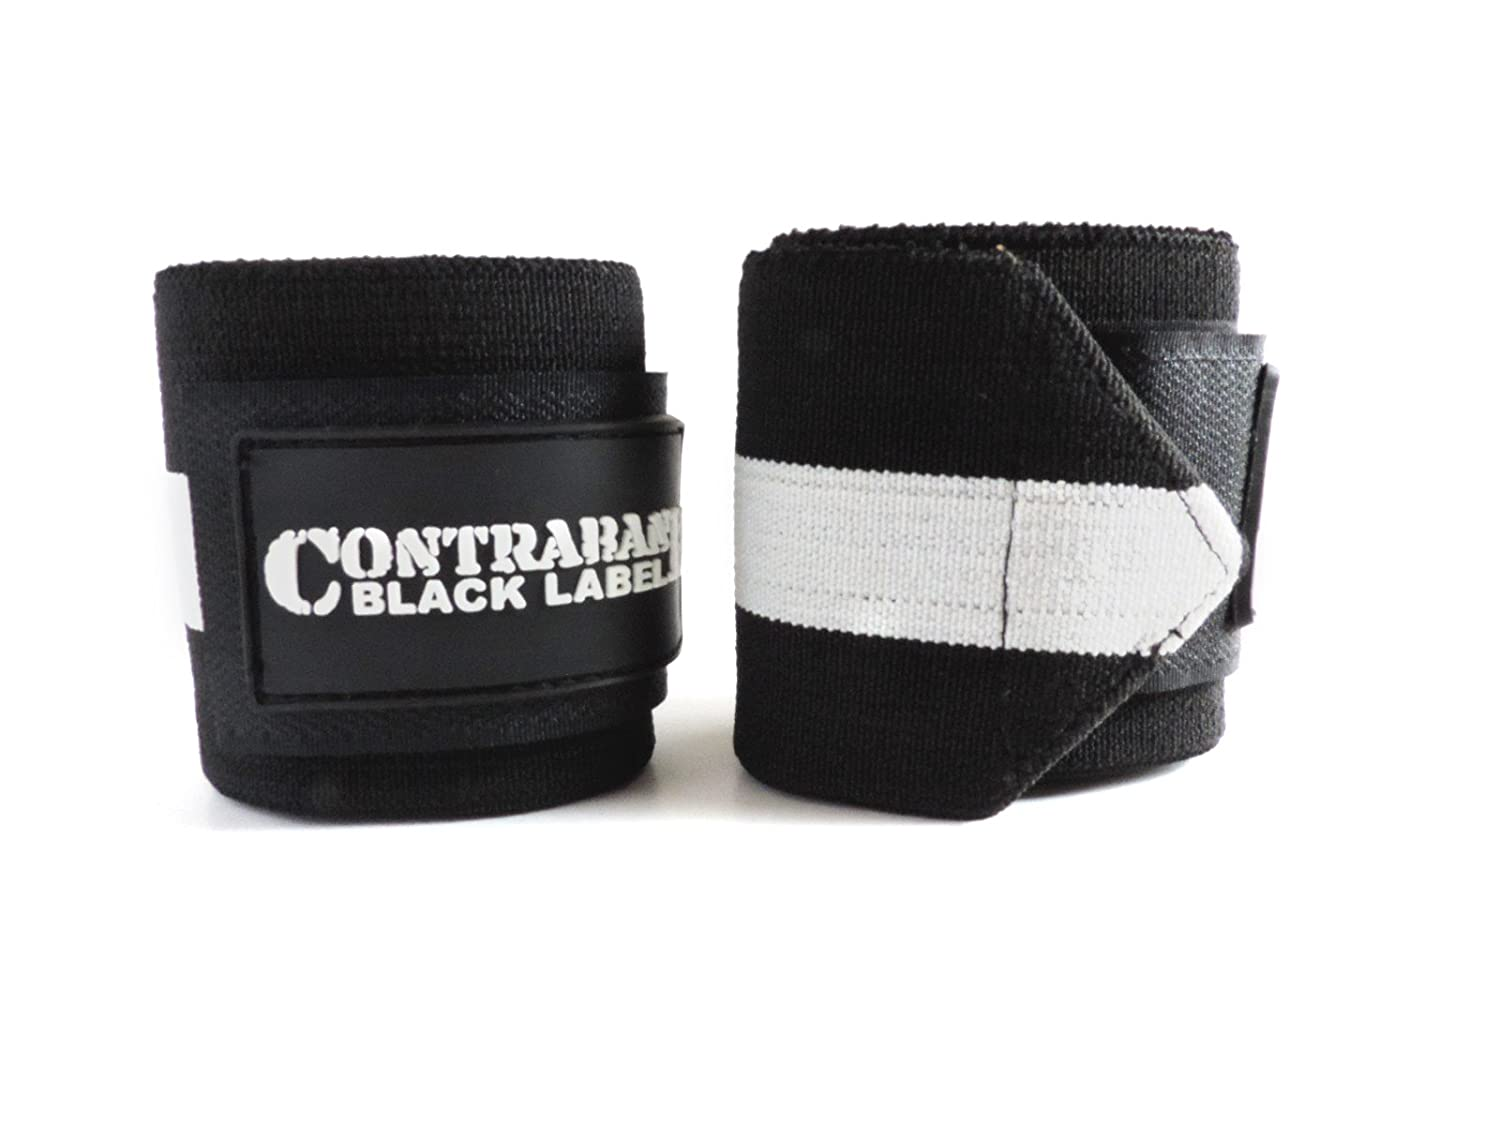 Bodybuilding - Competition Grade Wrist Support USPA Approved for Powerlifting Contraband Black Label 1001 Weight Lifting Wrist Wraps w//Thump Loops Strongman Pair